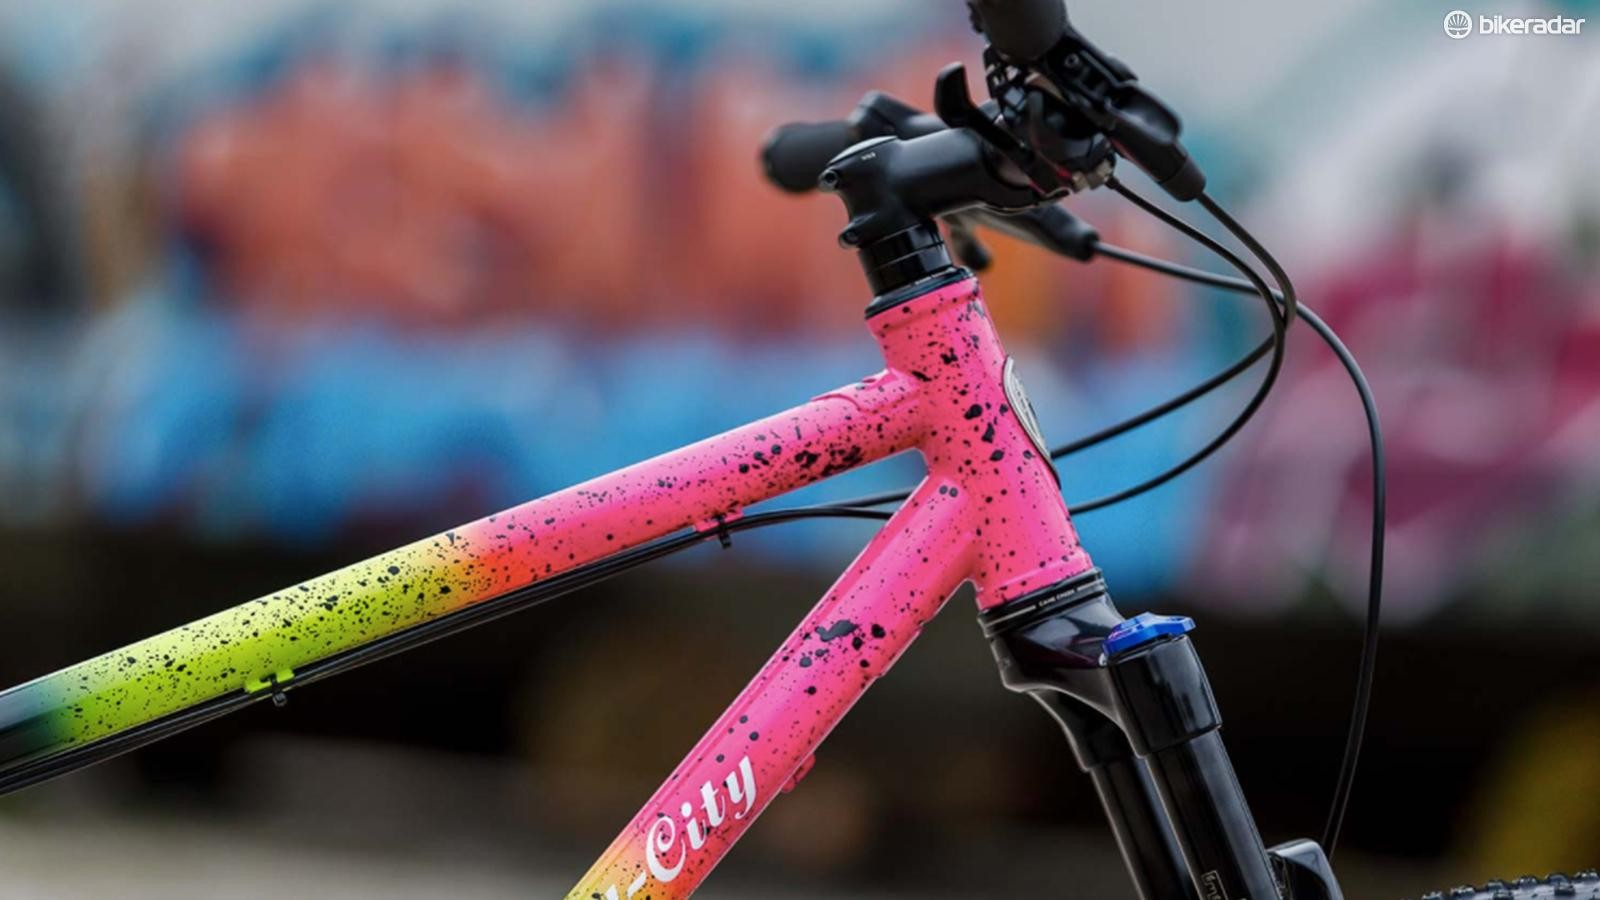 The All-City Electric Queen has modern frame features and a retro paint job